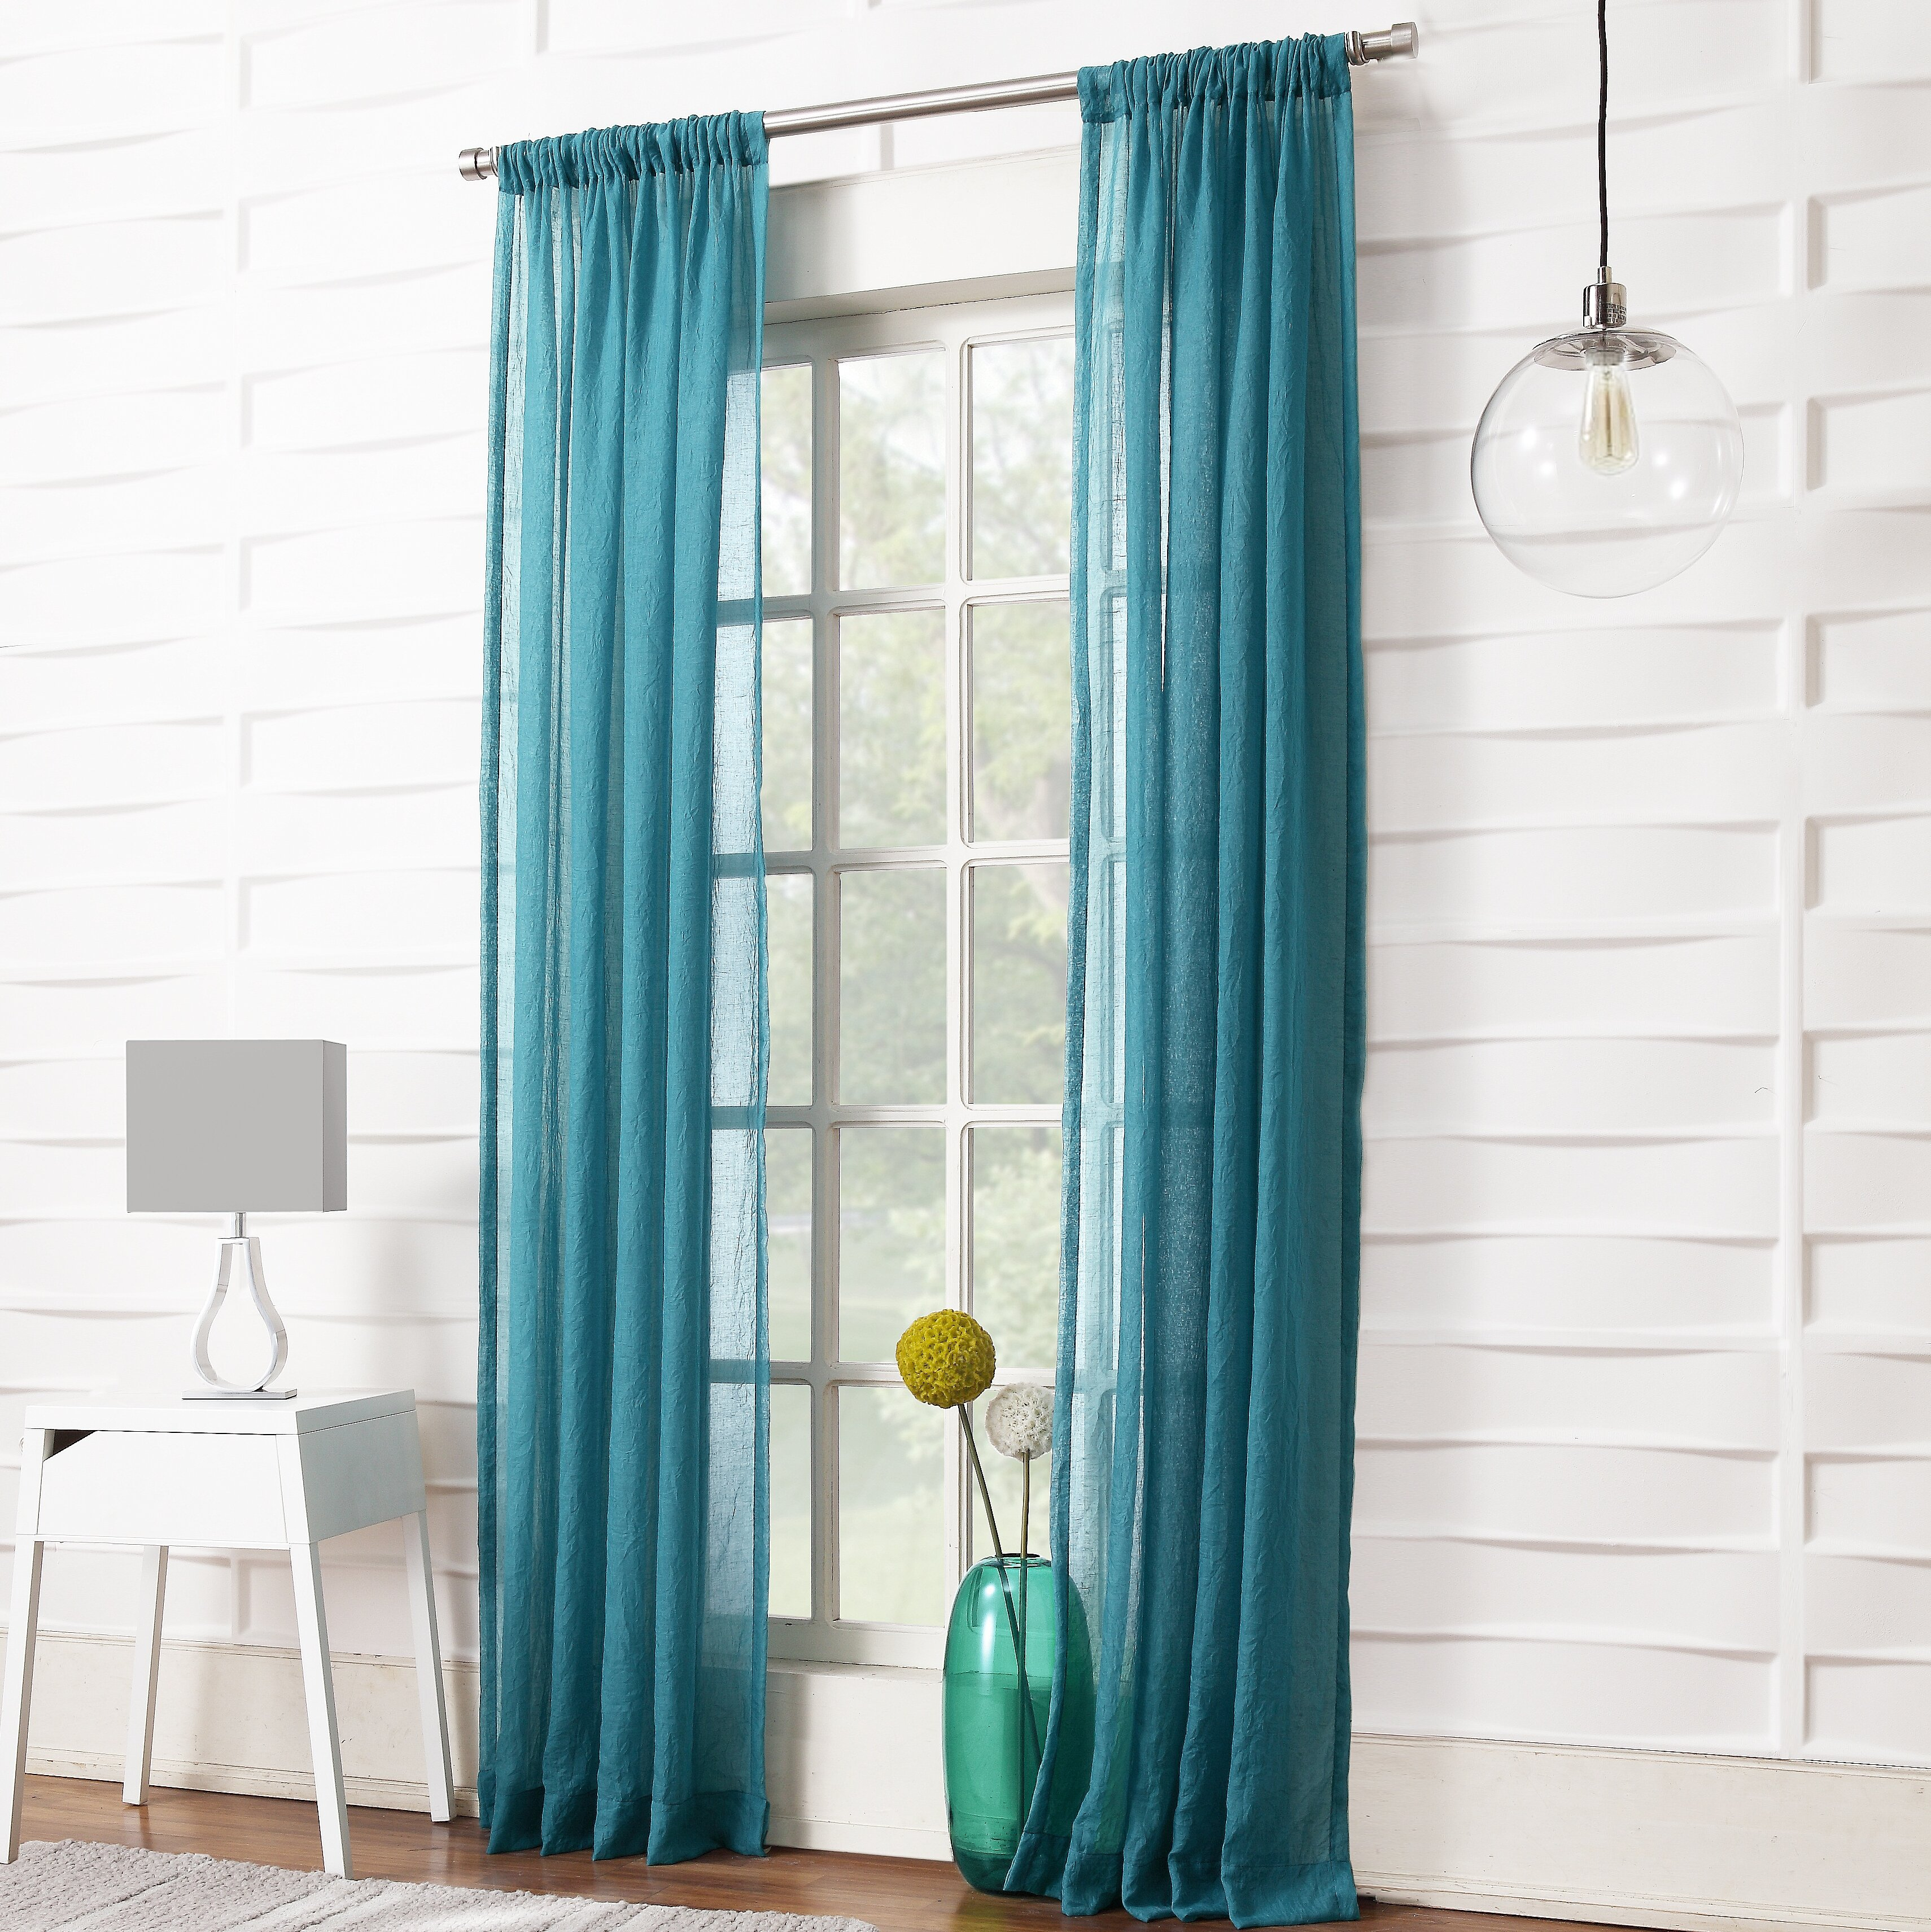 beautiful sheer you curtain floral curtains with teal can a patterns p delicate life timeless white give